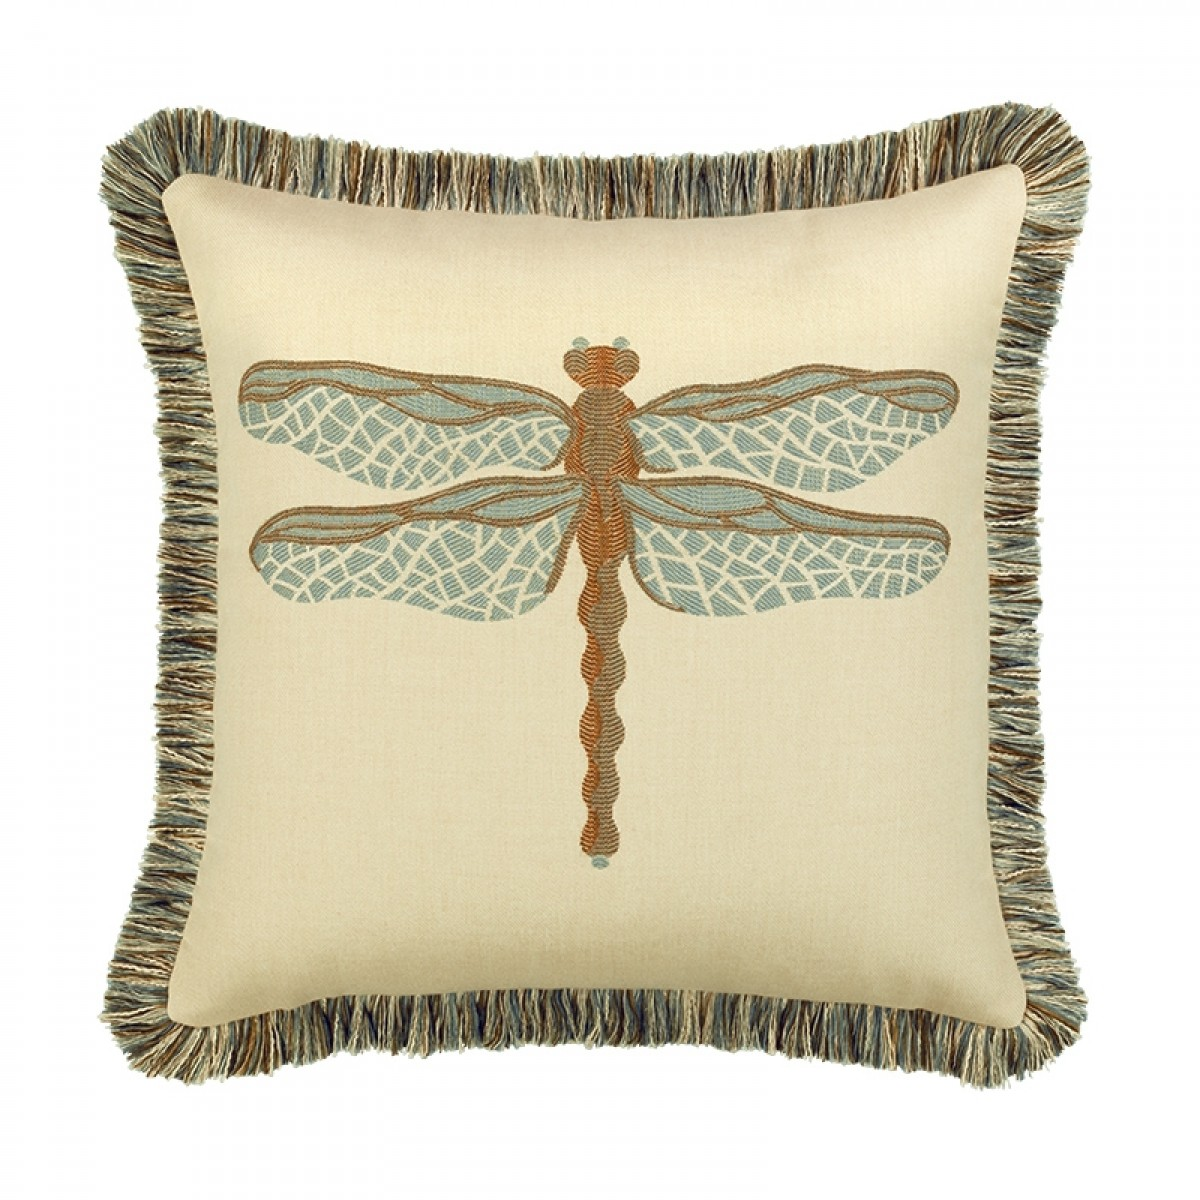 Dragonfly Spa - This item will ship 11/13